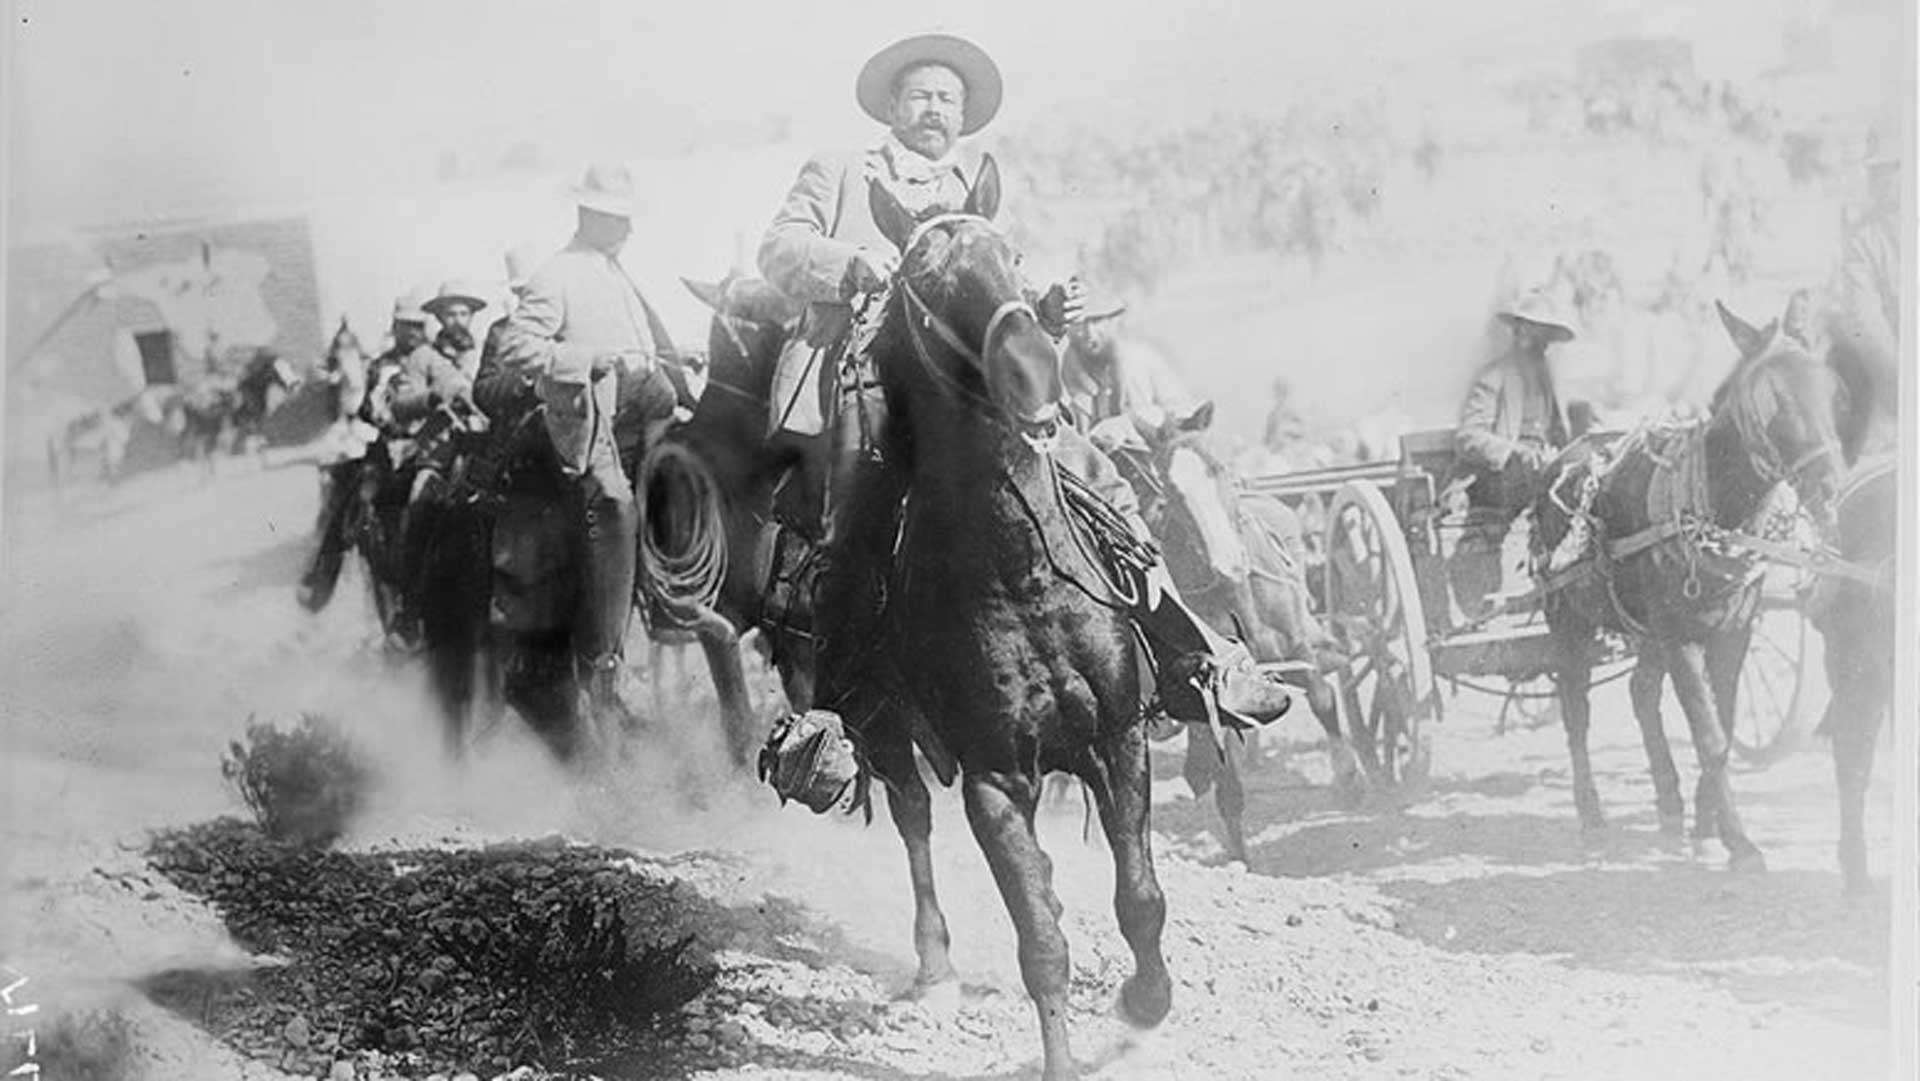 General Francisco 'Pancho' Villa on horseback, during the Mexican Revolution, 1914.